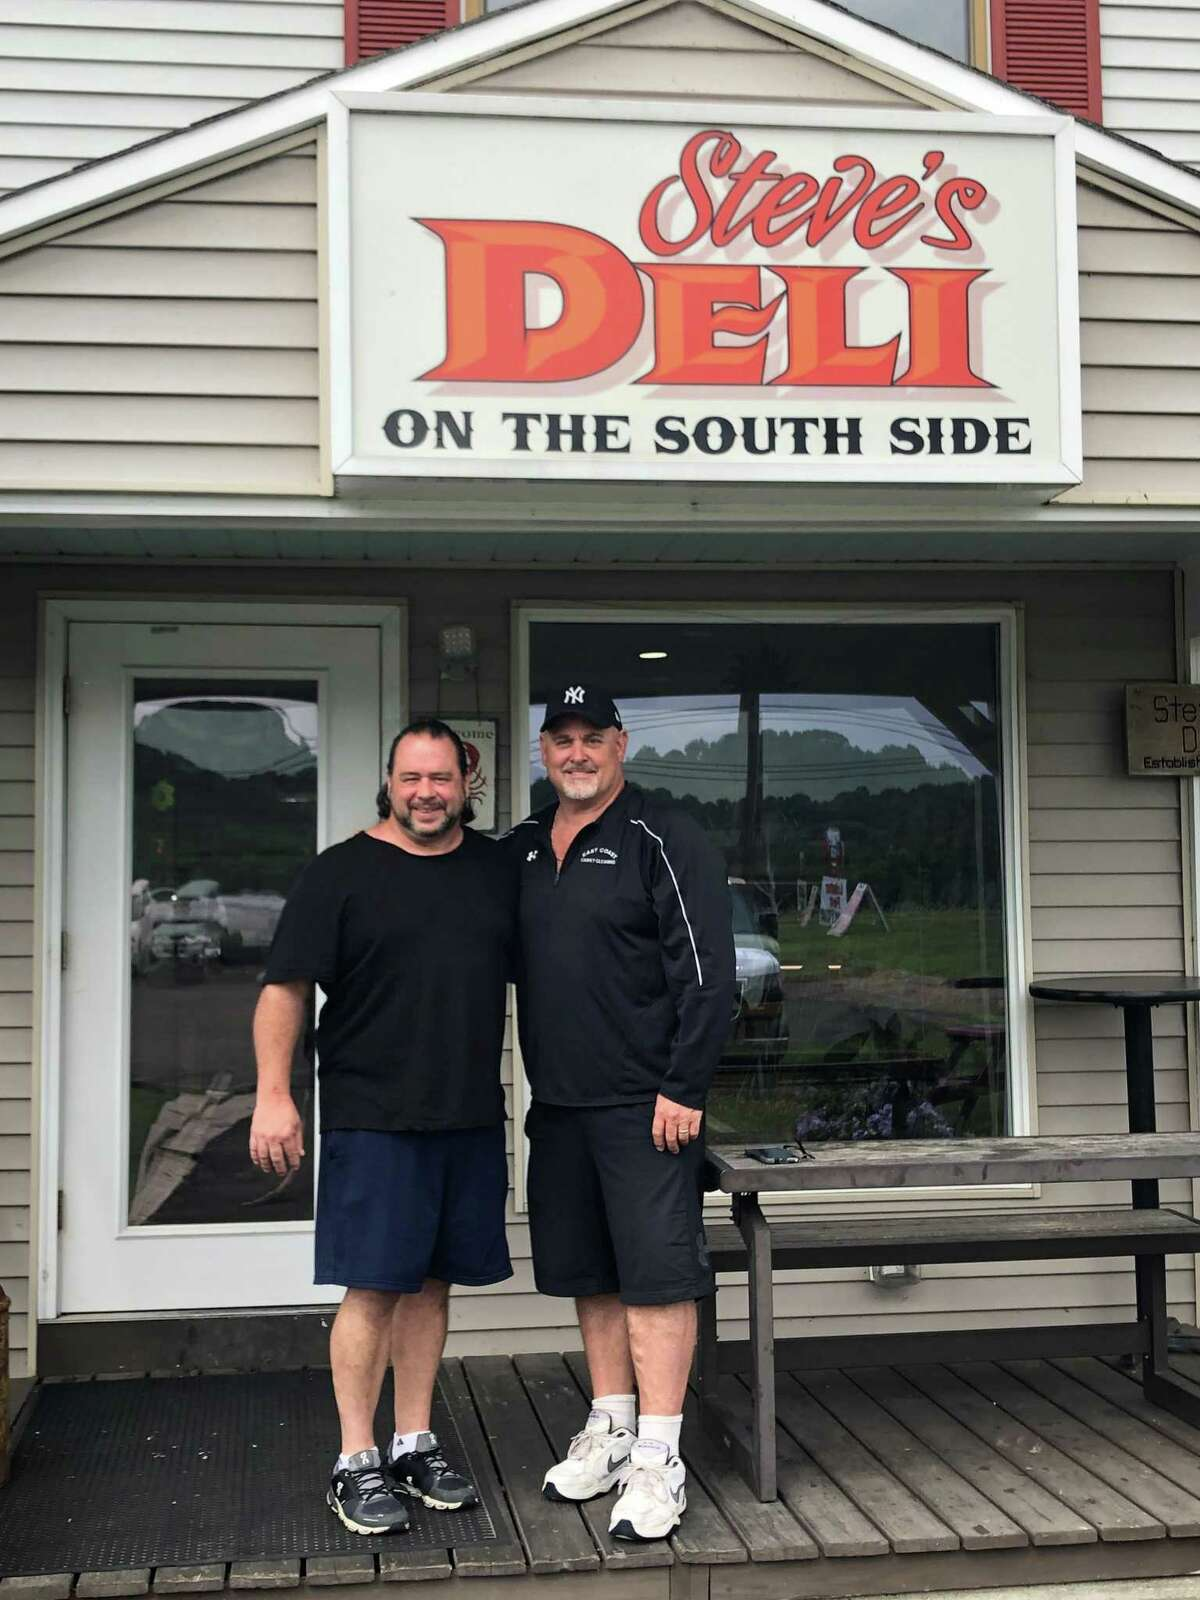 Steve Merkel, left, and Doug Skelly are longtime friends, having met around the time they each started their own business, Steve's Deli and East Coast Carpet & Upholstery Cleaning, respectively.